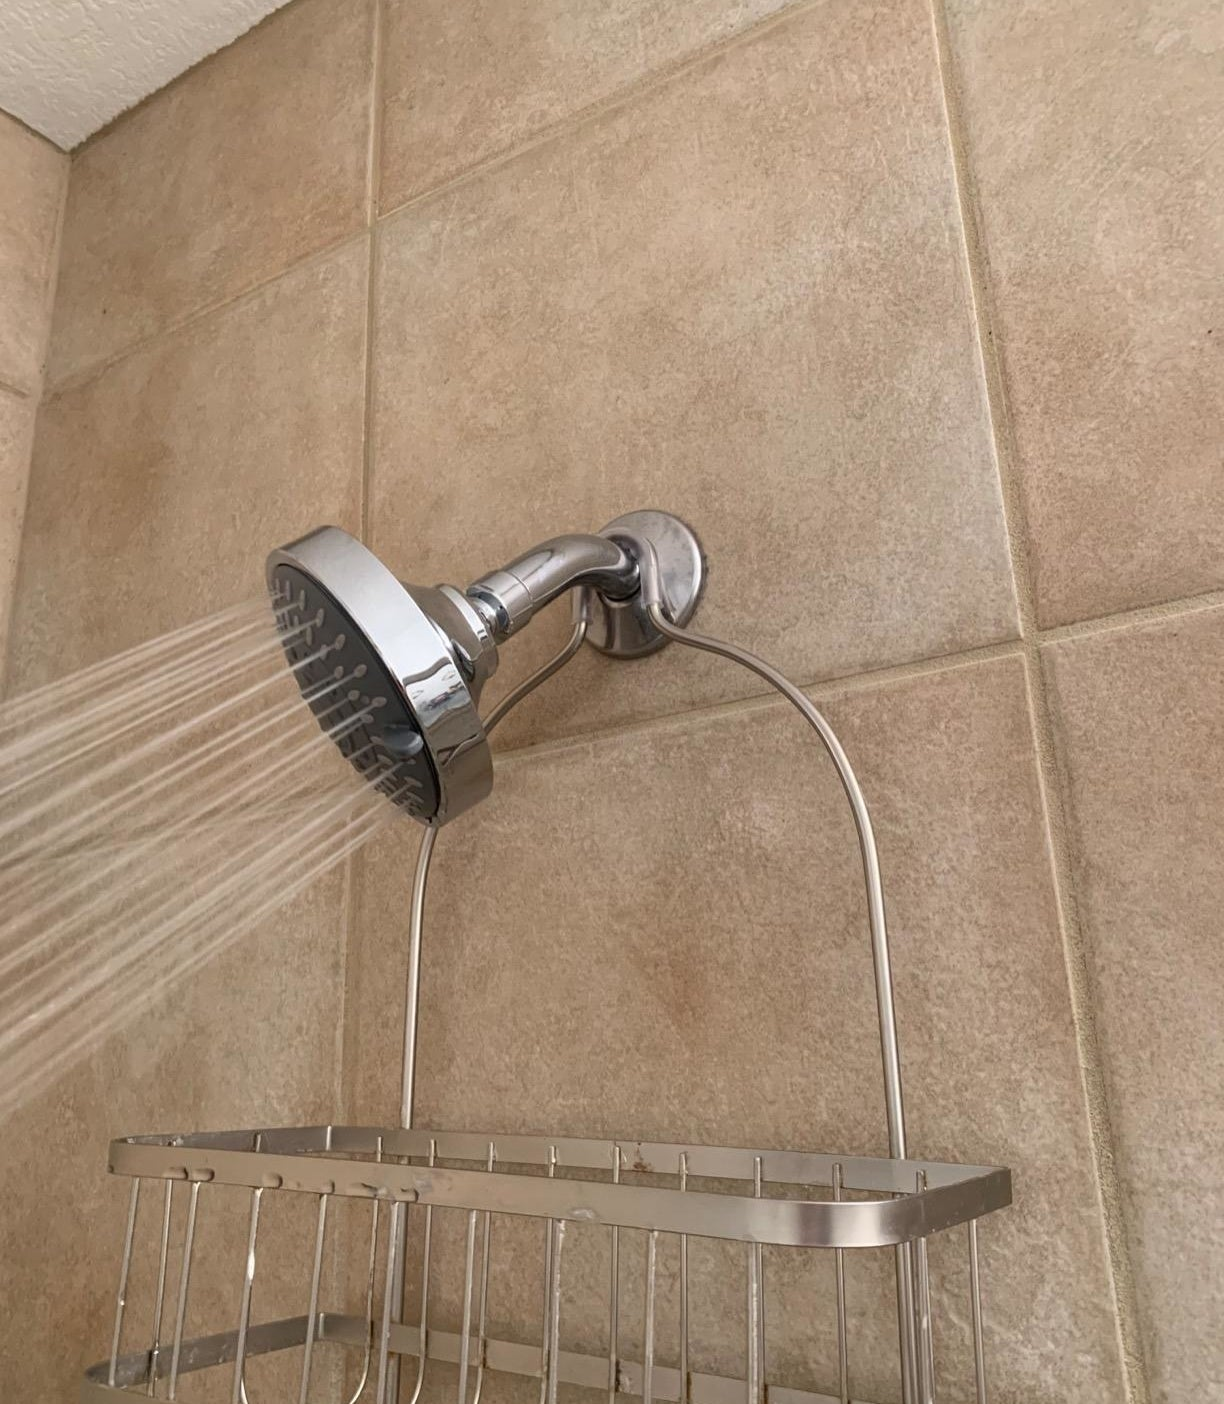 reviewer image of the warmspray shower head spraying high pressure water on the rain setting